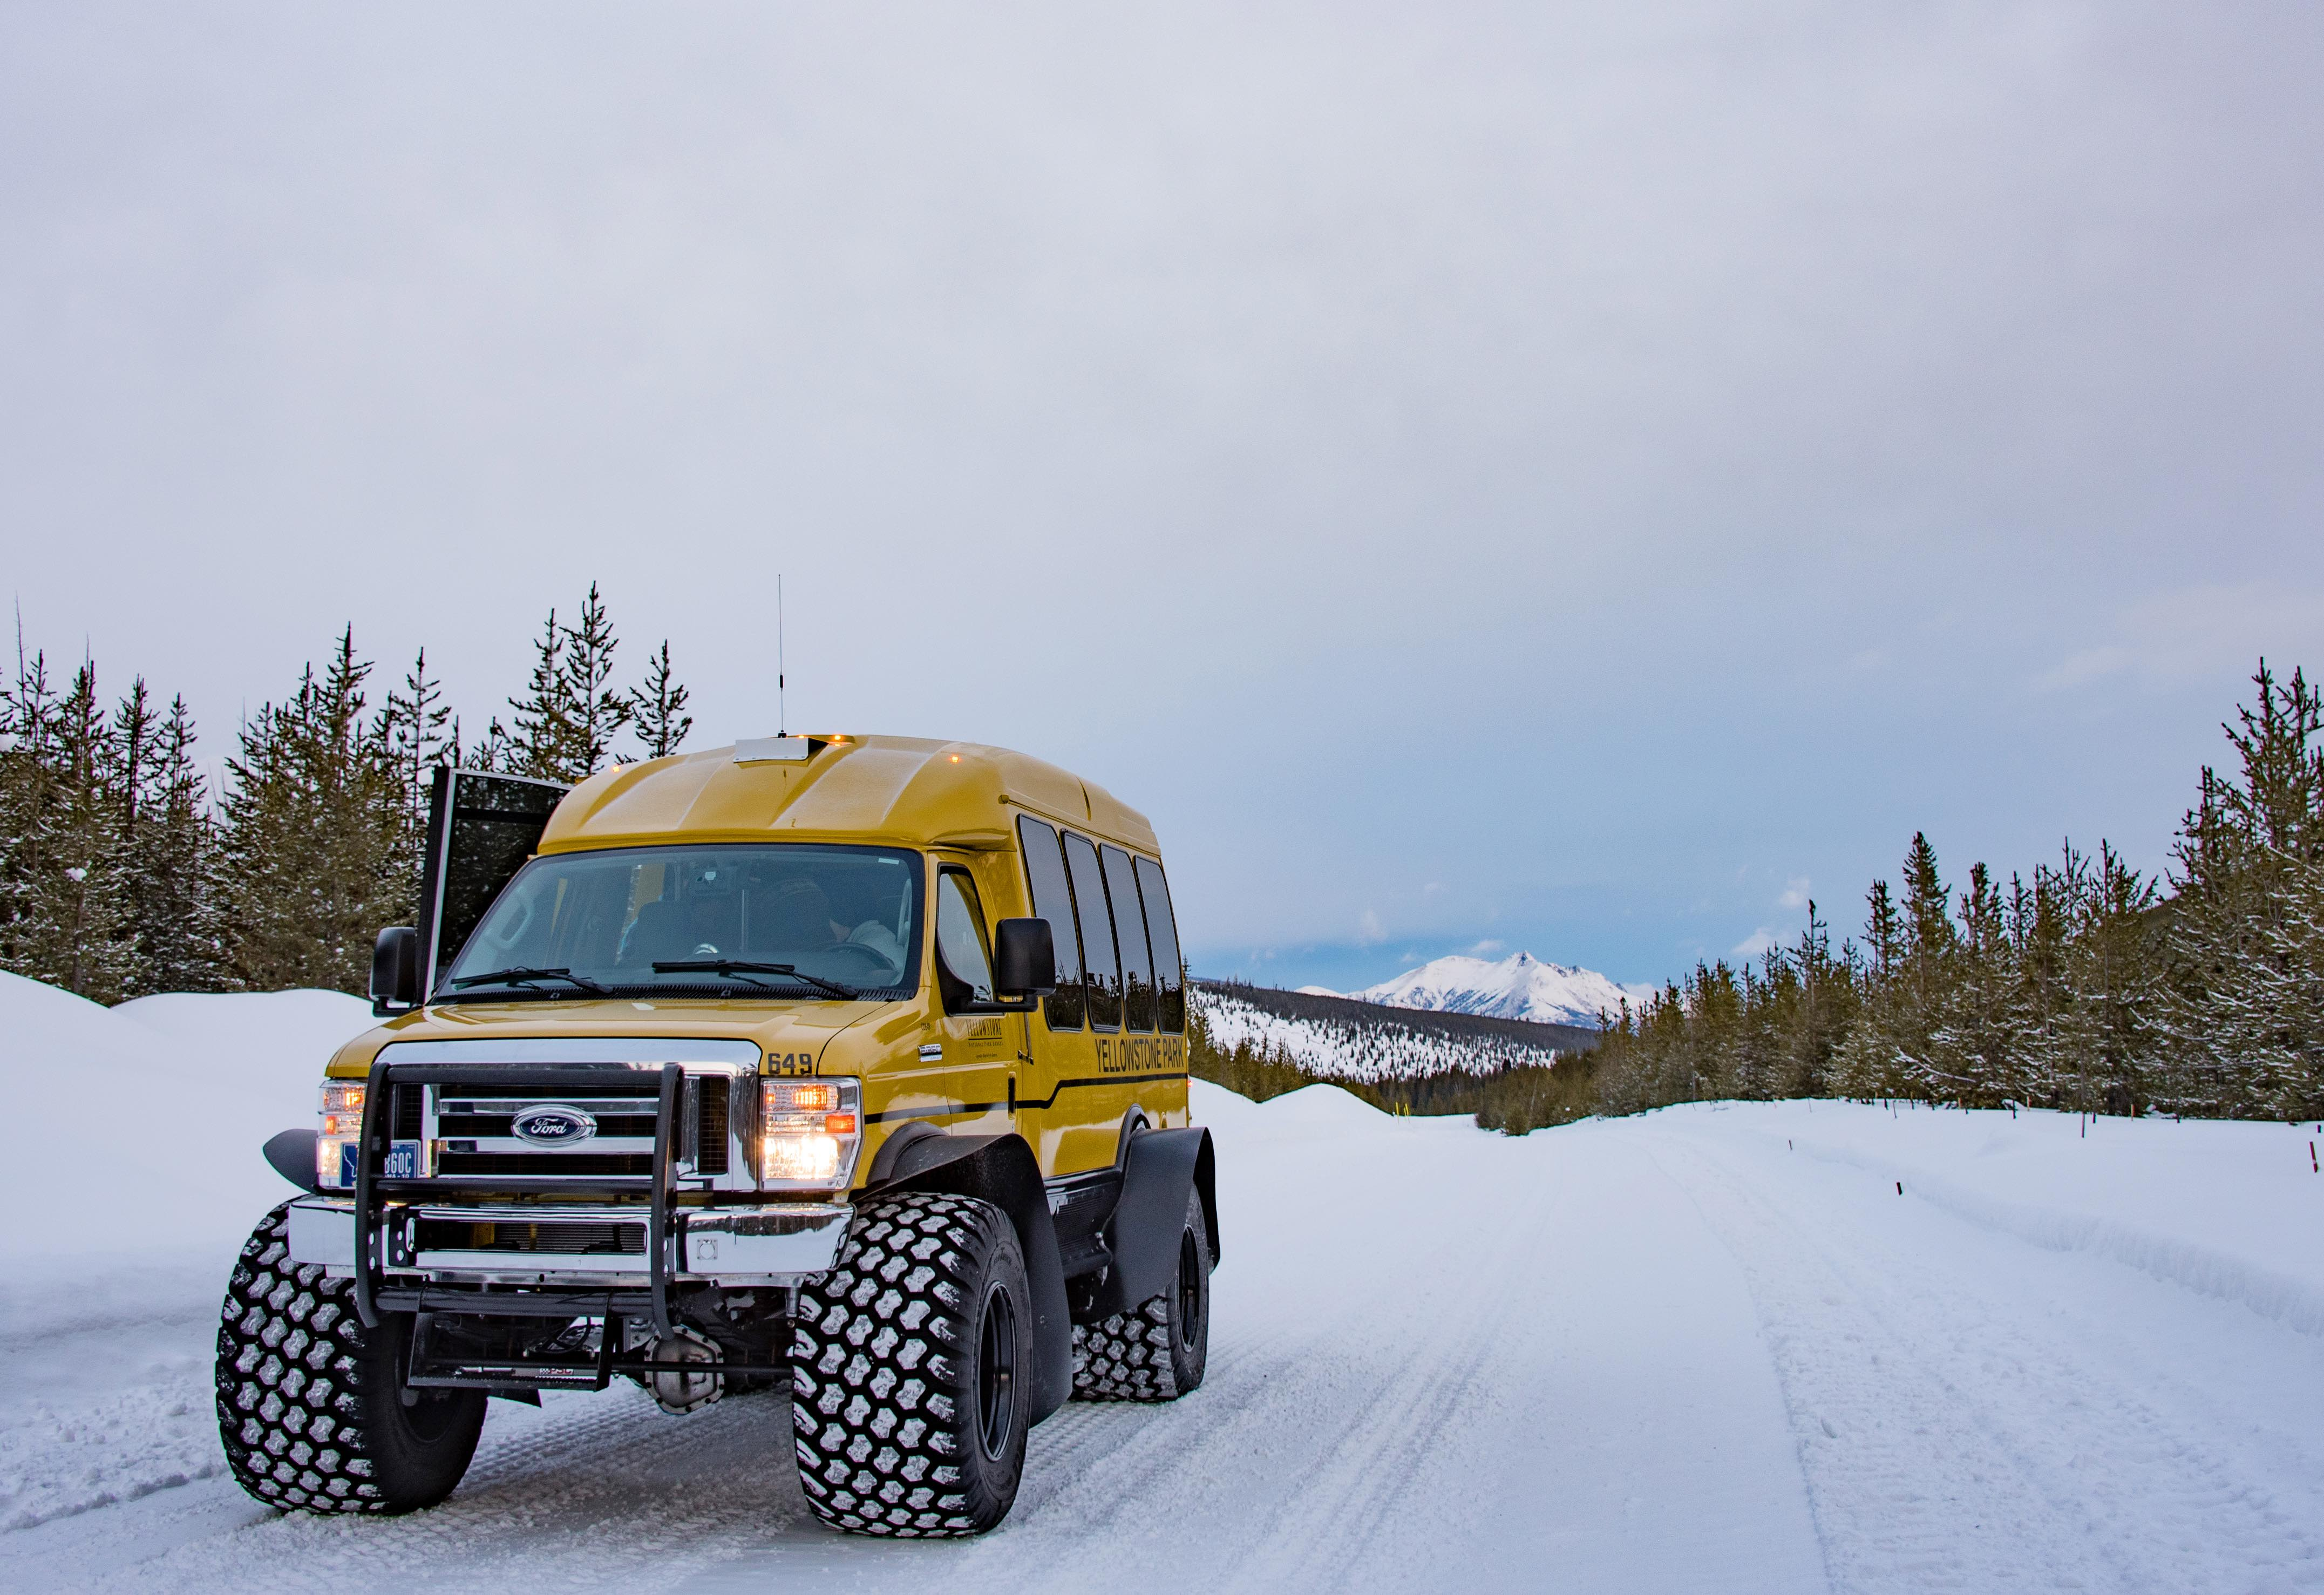 A Snowcoach in Yellowstone National Park